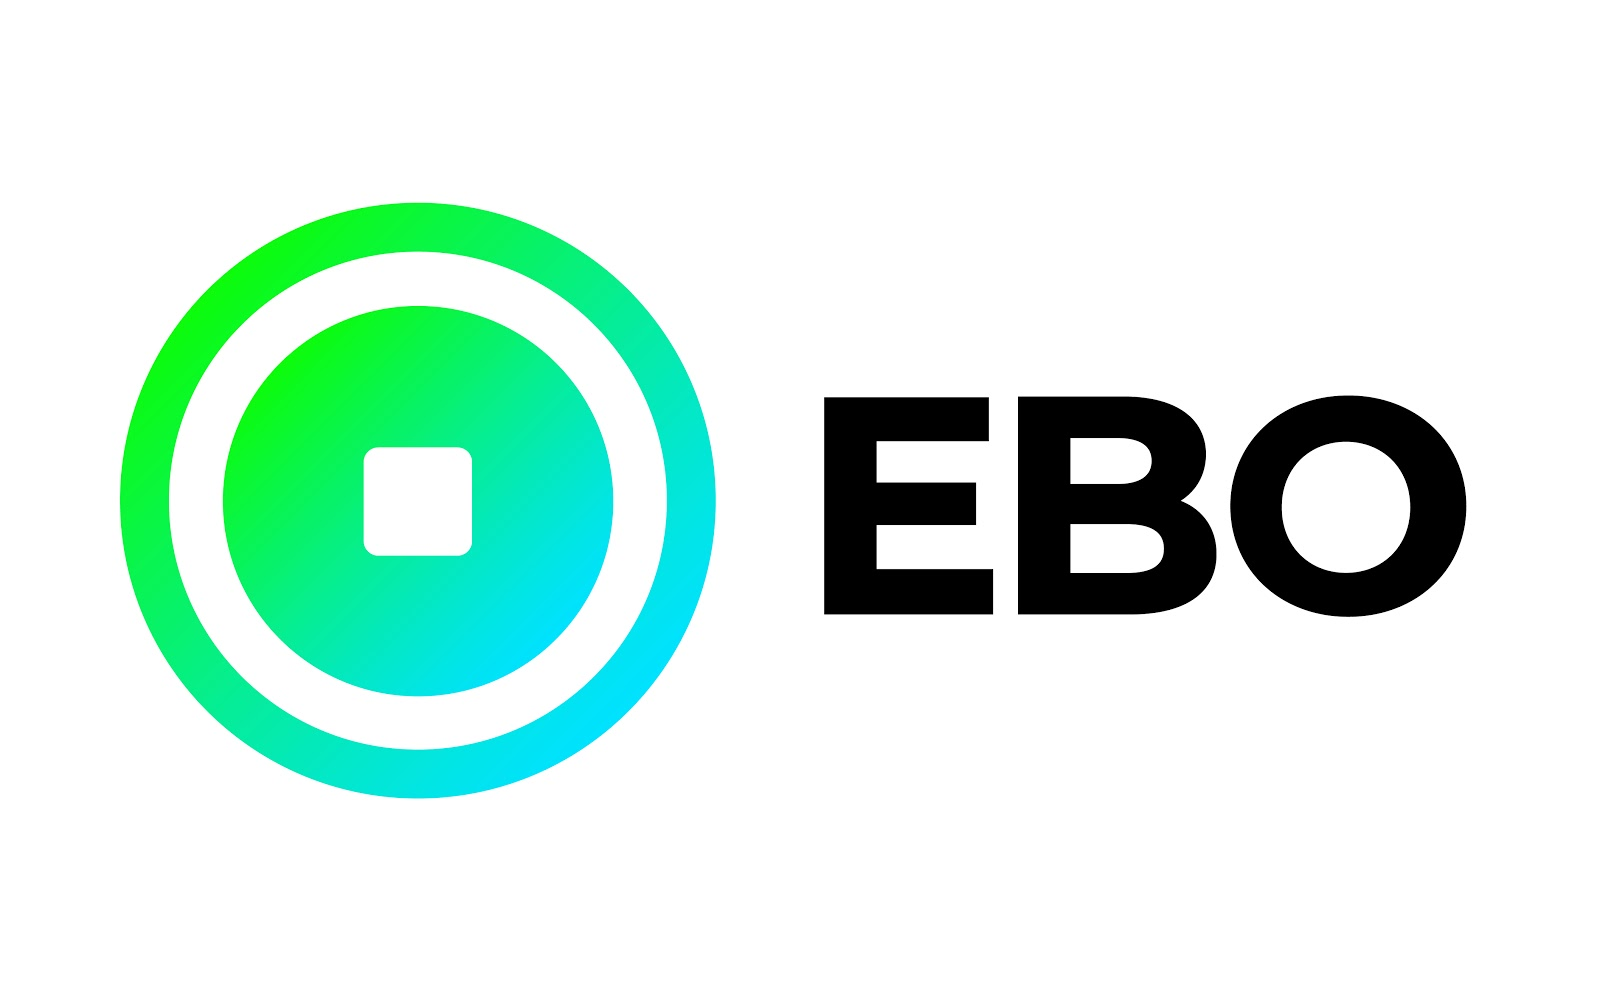 EBO Gives Back Full Custody To Traders With Its Open Finance Ecosystem, Now Available On The App Store